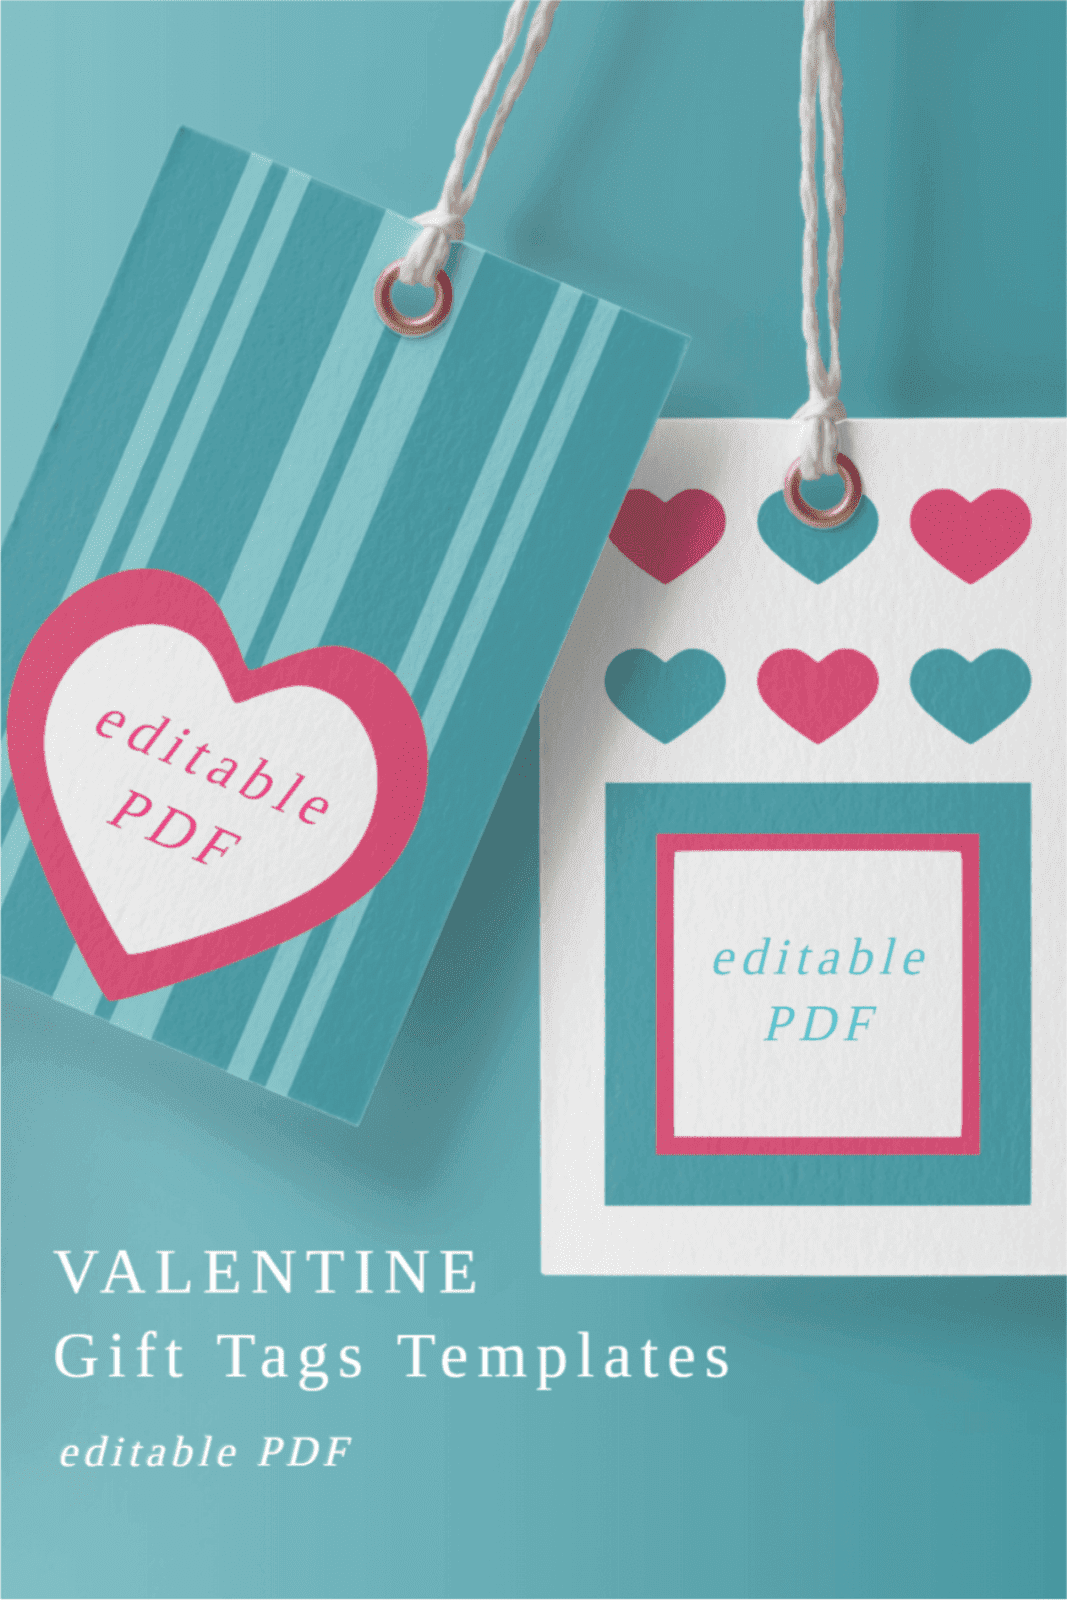 PINK AND BLUE TAGS WITH HEARTS